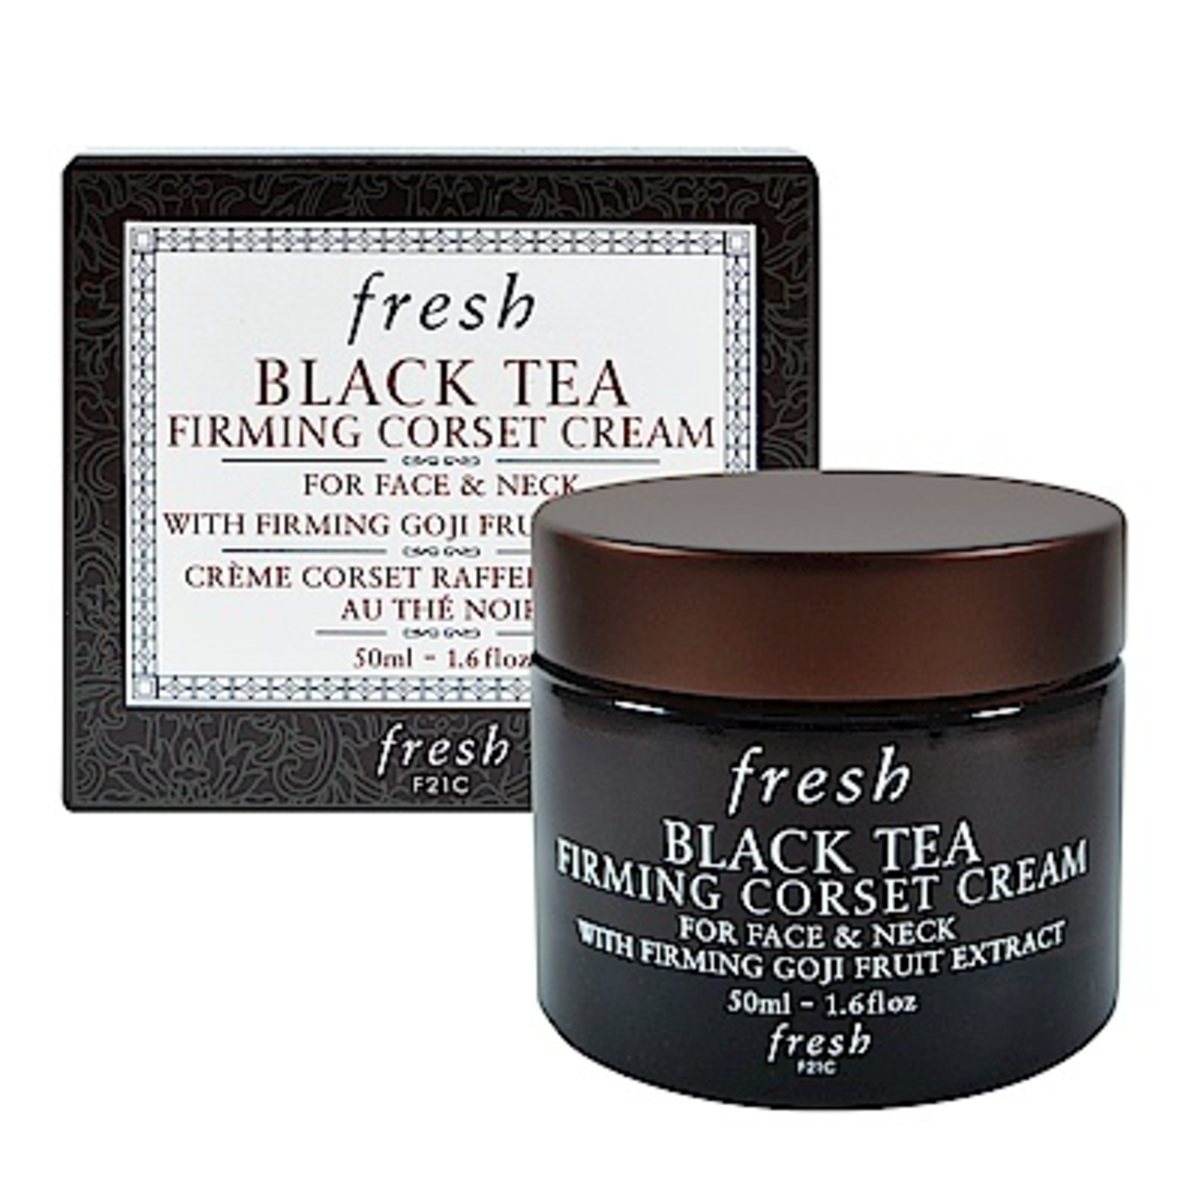 Black Tea Firming Corset Cream 50ml